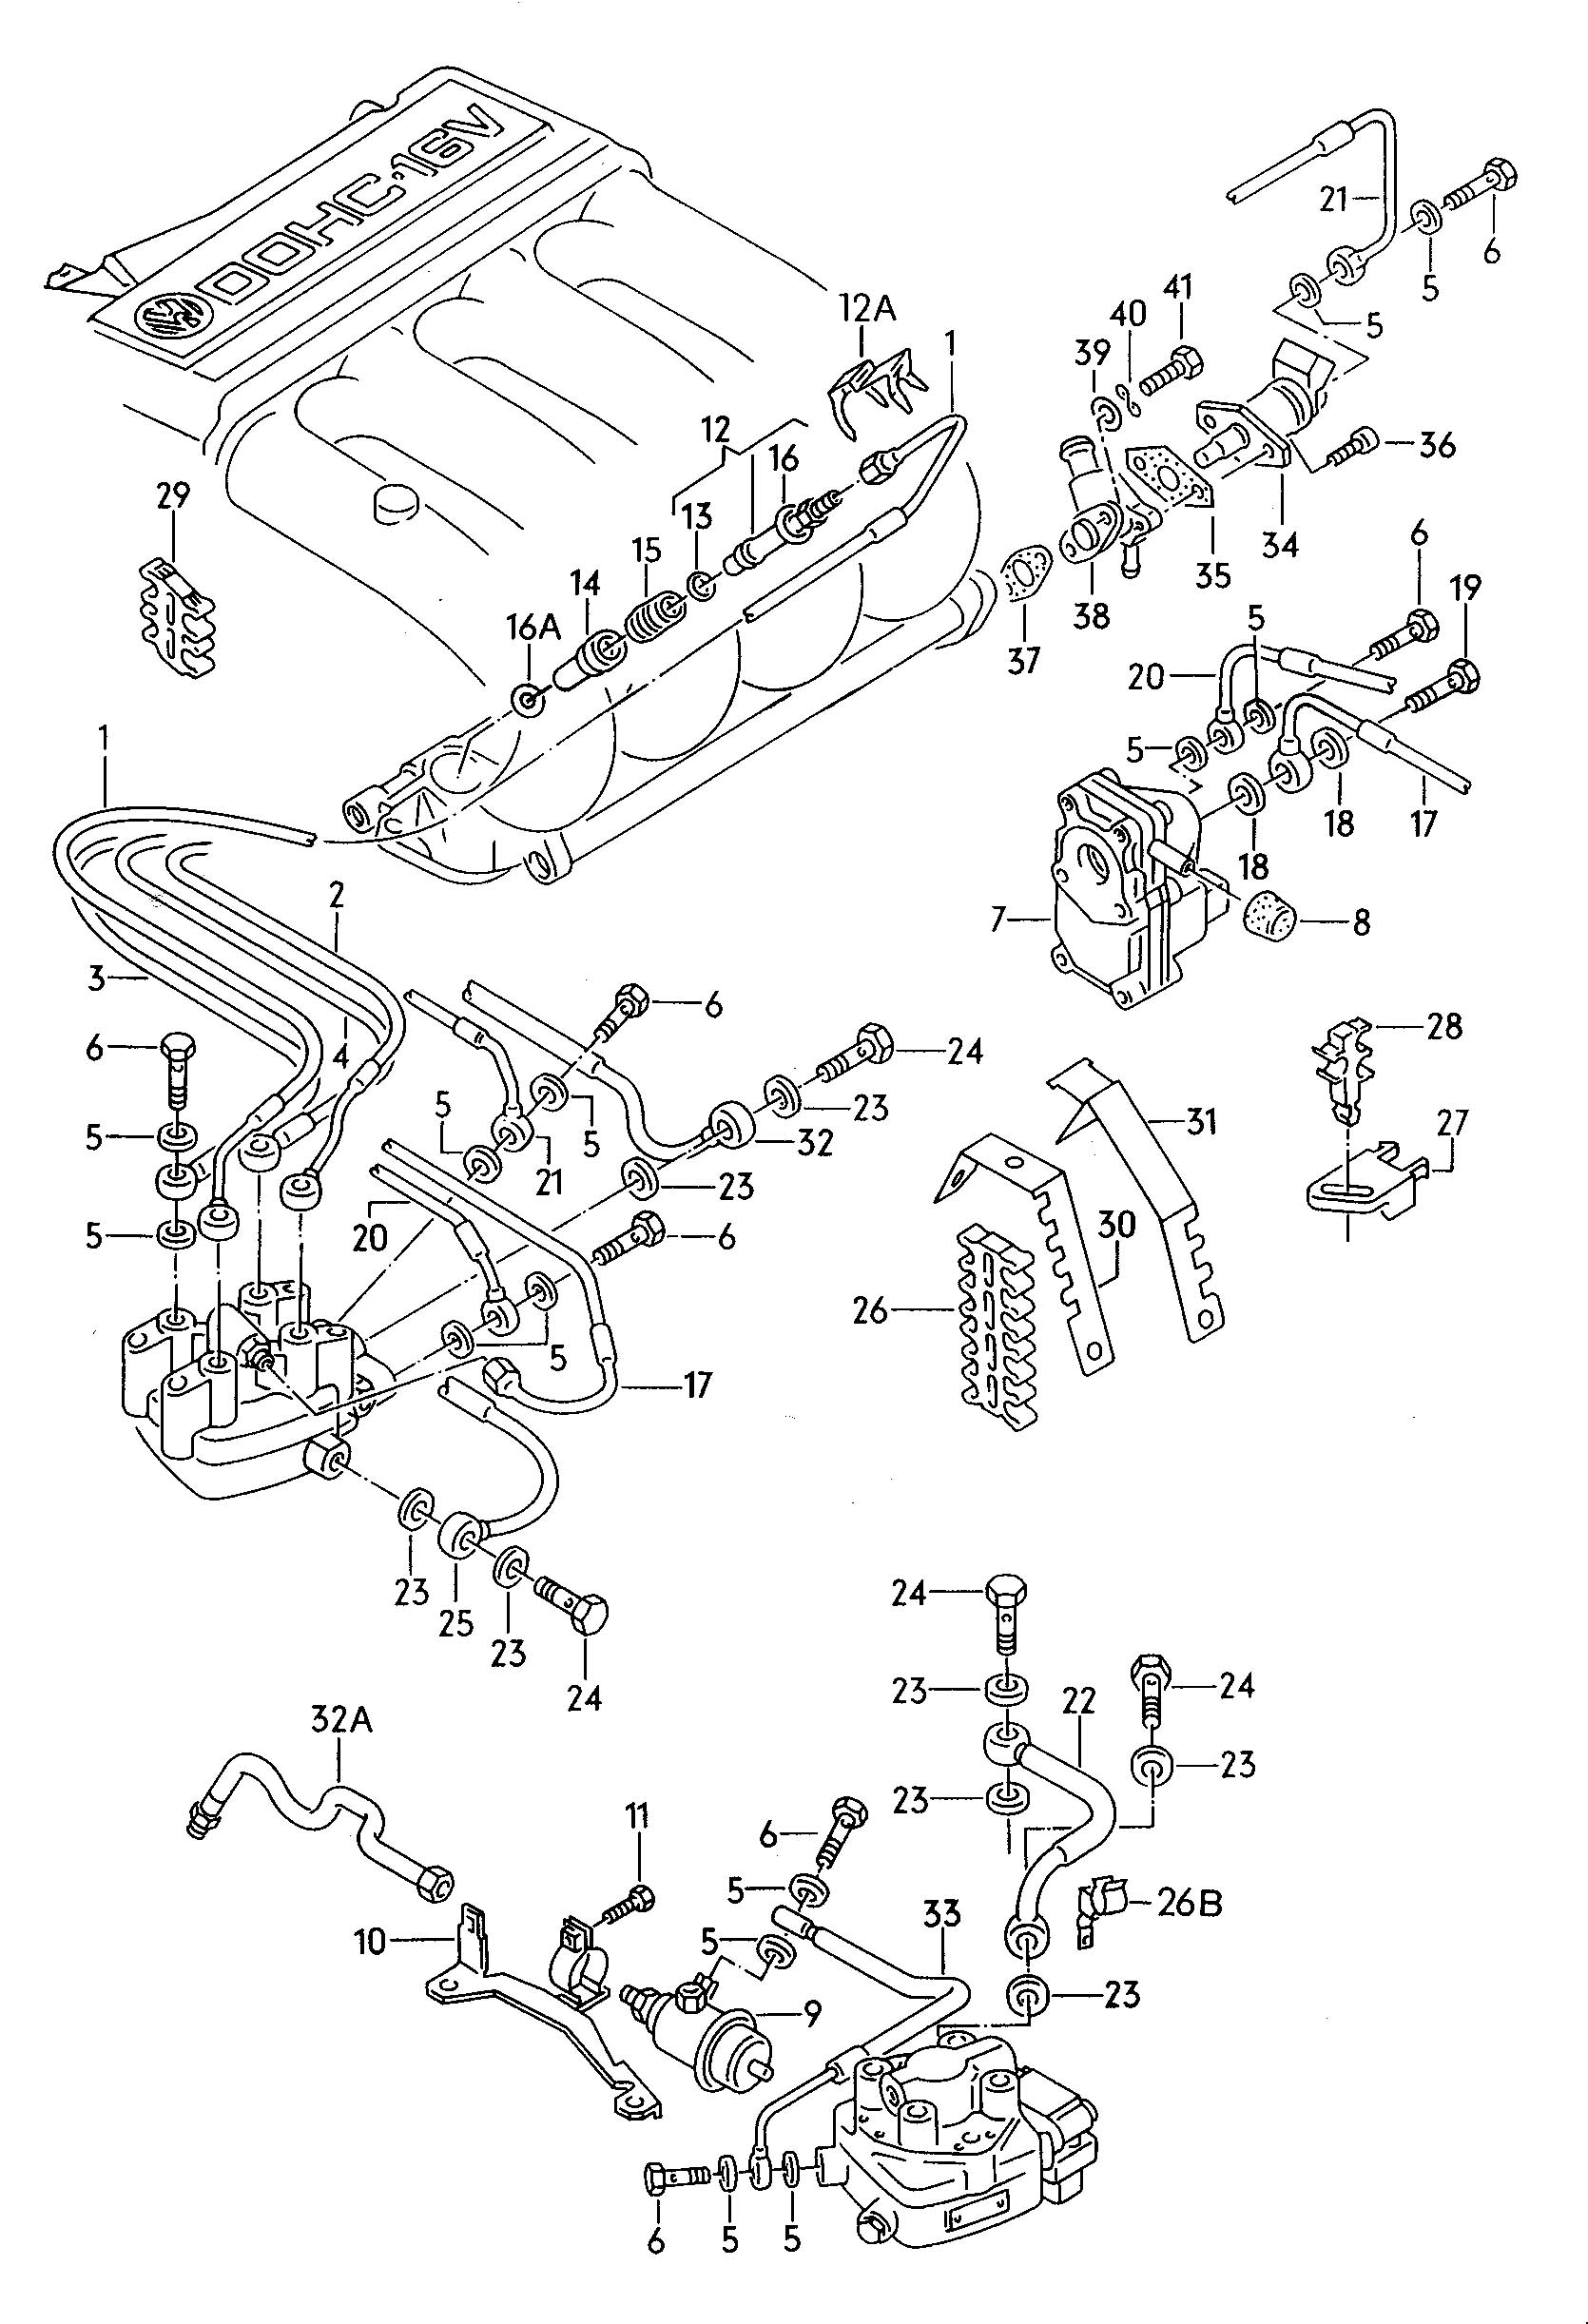 1600cc Vw Engine Diagram 1975